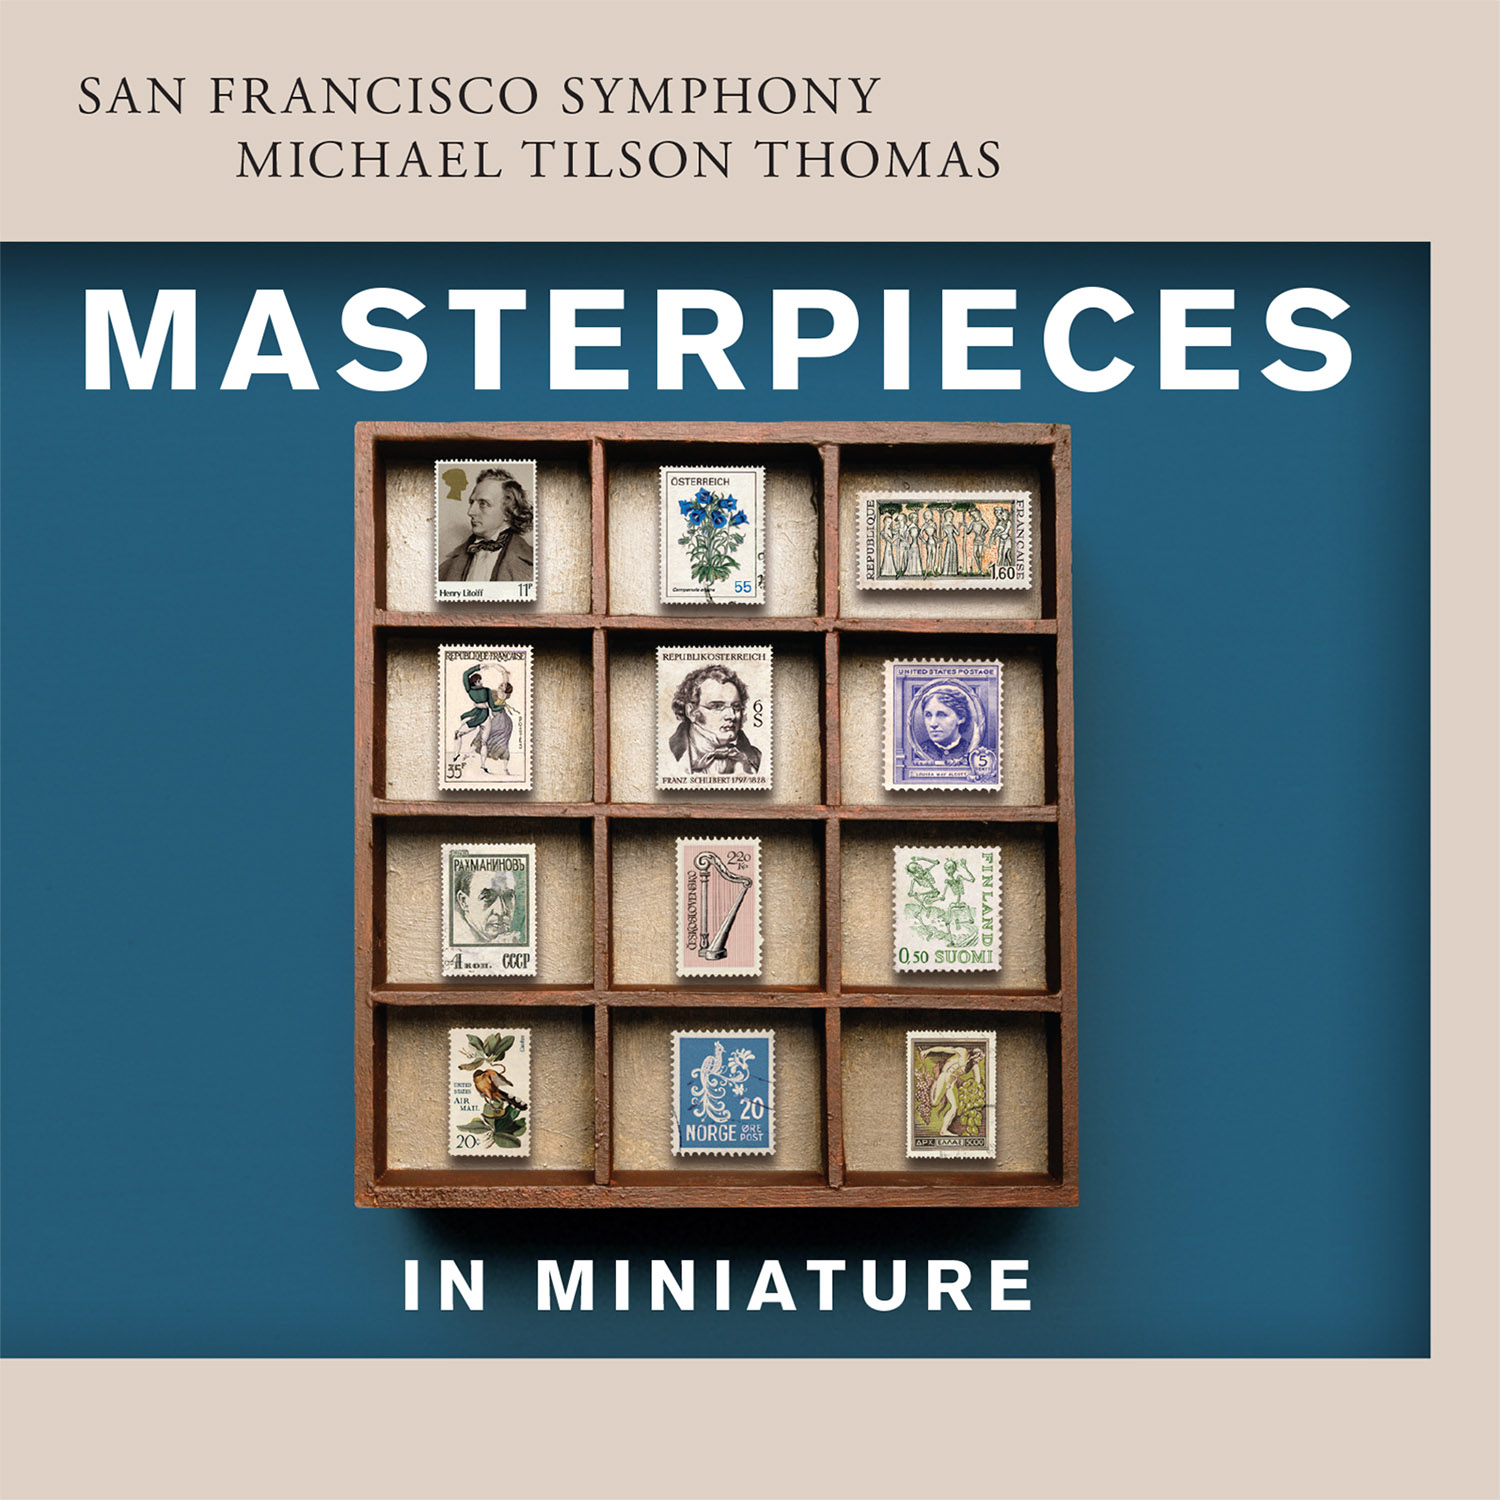 San Francisco Symphony - Masterpieces in Miniature - Cover Image